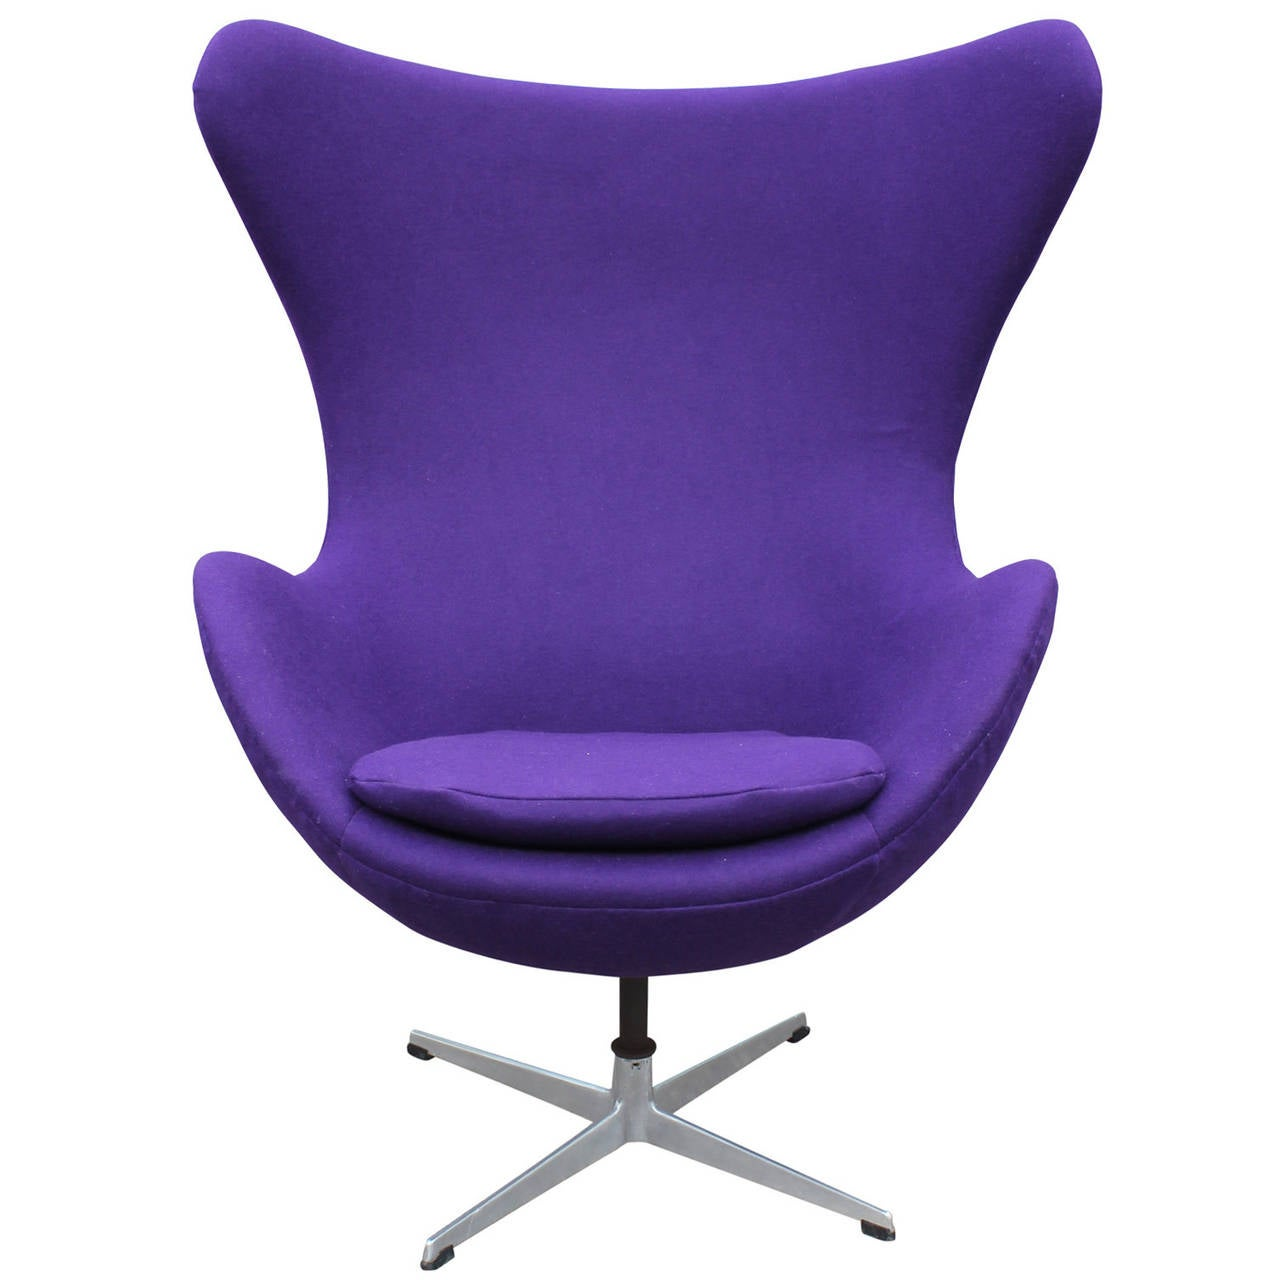 modern arne jacobson egg chair in royal purple danish divina wool for sale at 1stdibs. Black Bedroom Furniture Sets. Home Design Ideas